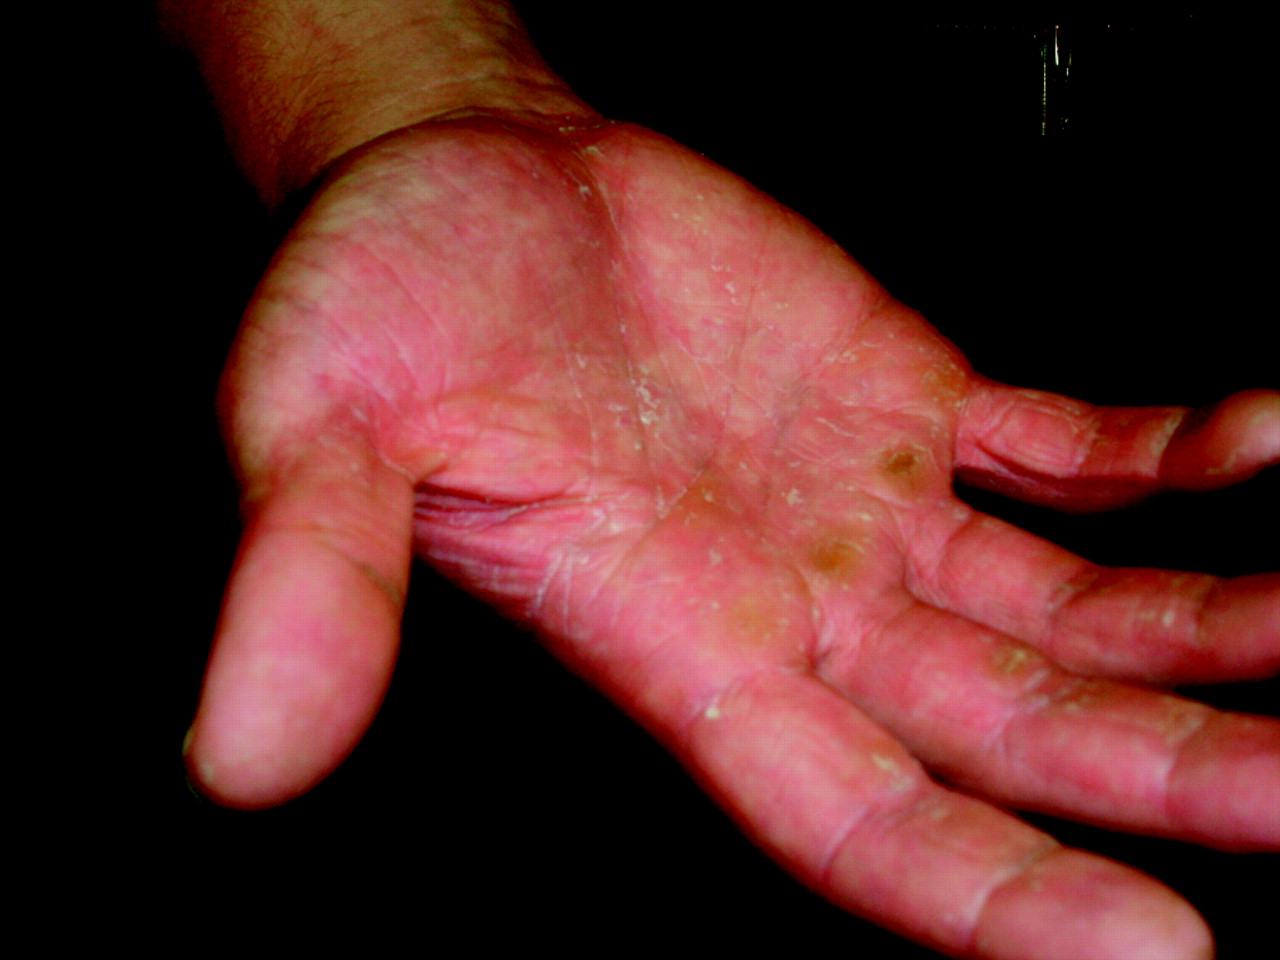 Hand Dermatitis: Review of Etiology, Diagnosis, and ...